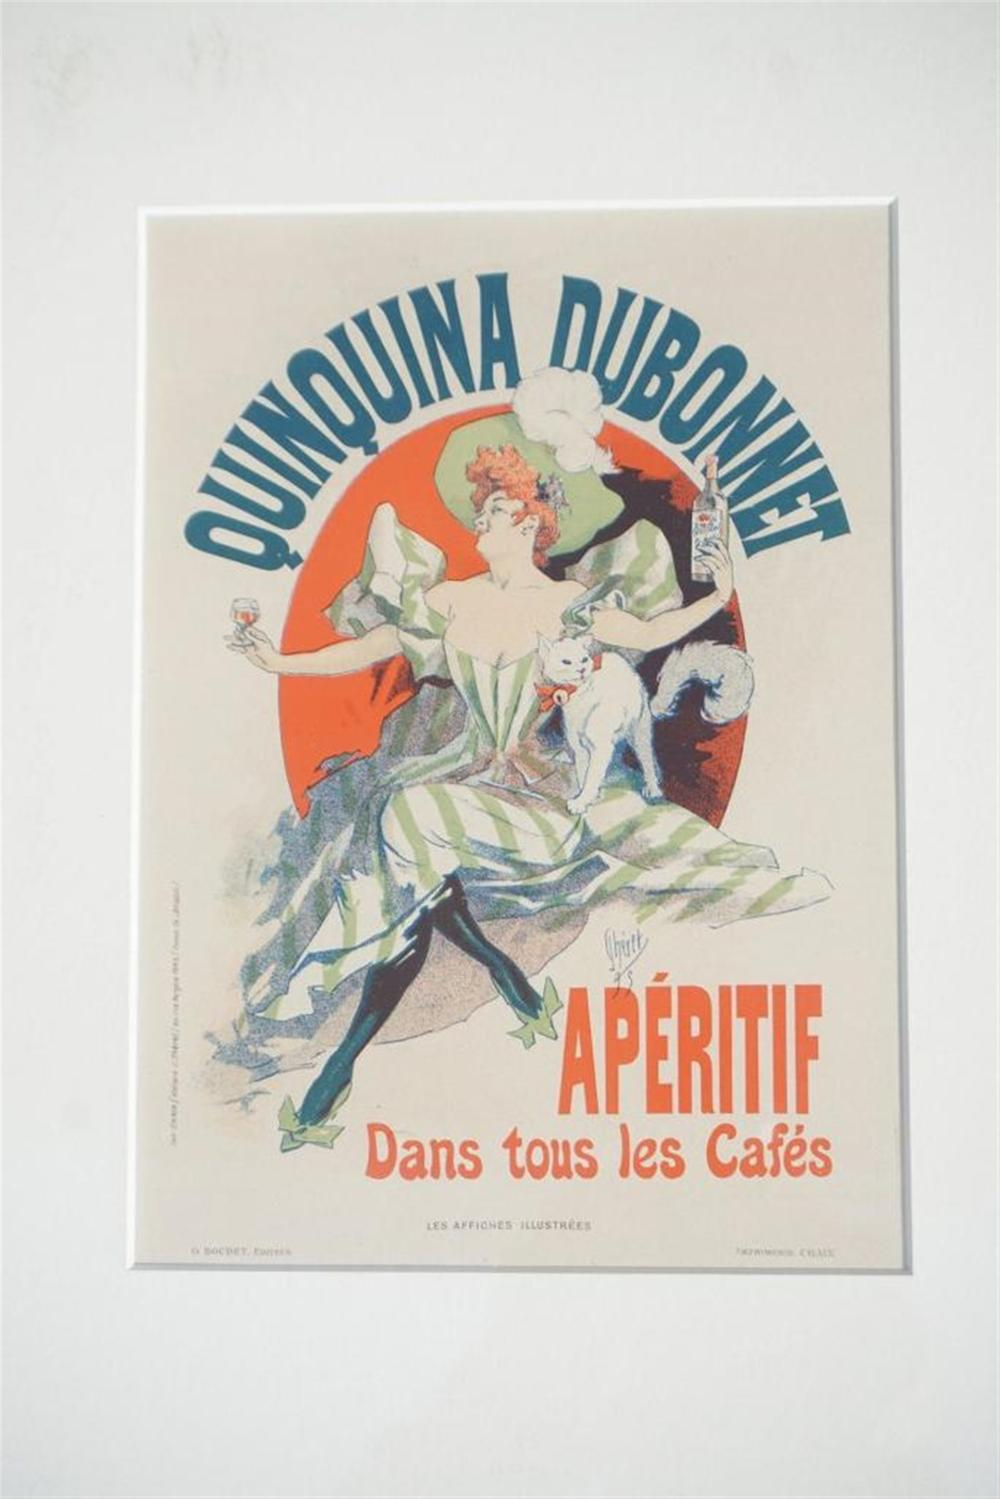 "1896 CHERET QUINQUINA DUBONNET PARIS STONE LITHO POSTER, SHEET SIZE 8 3/4"" X 12 1/4"", EXCELLENT CONDITION, SHRINK WRAPPED AND MATTED, FROM RETIRED DEALERS COLLECTION, IMPRIMERIE CHAIX."